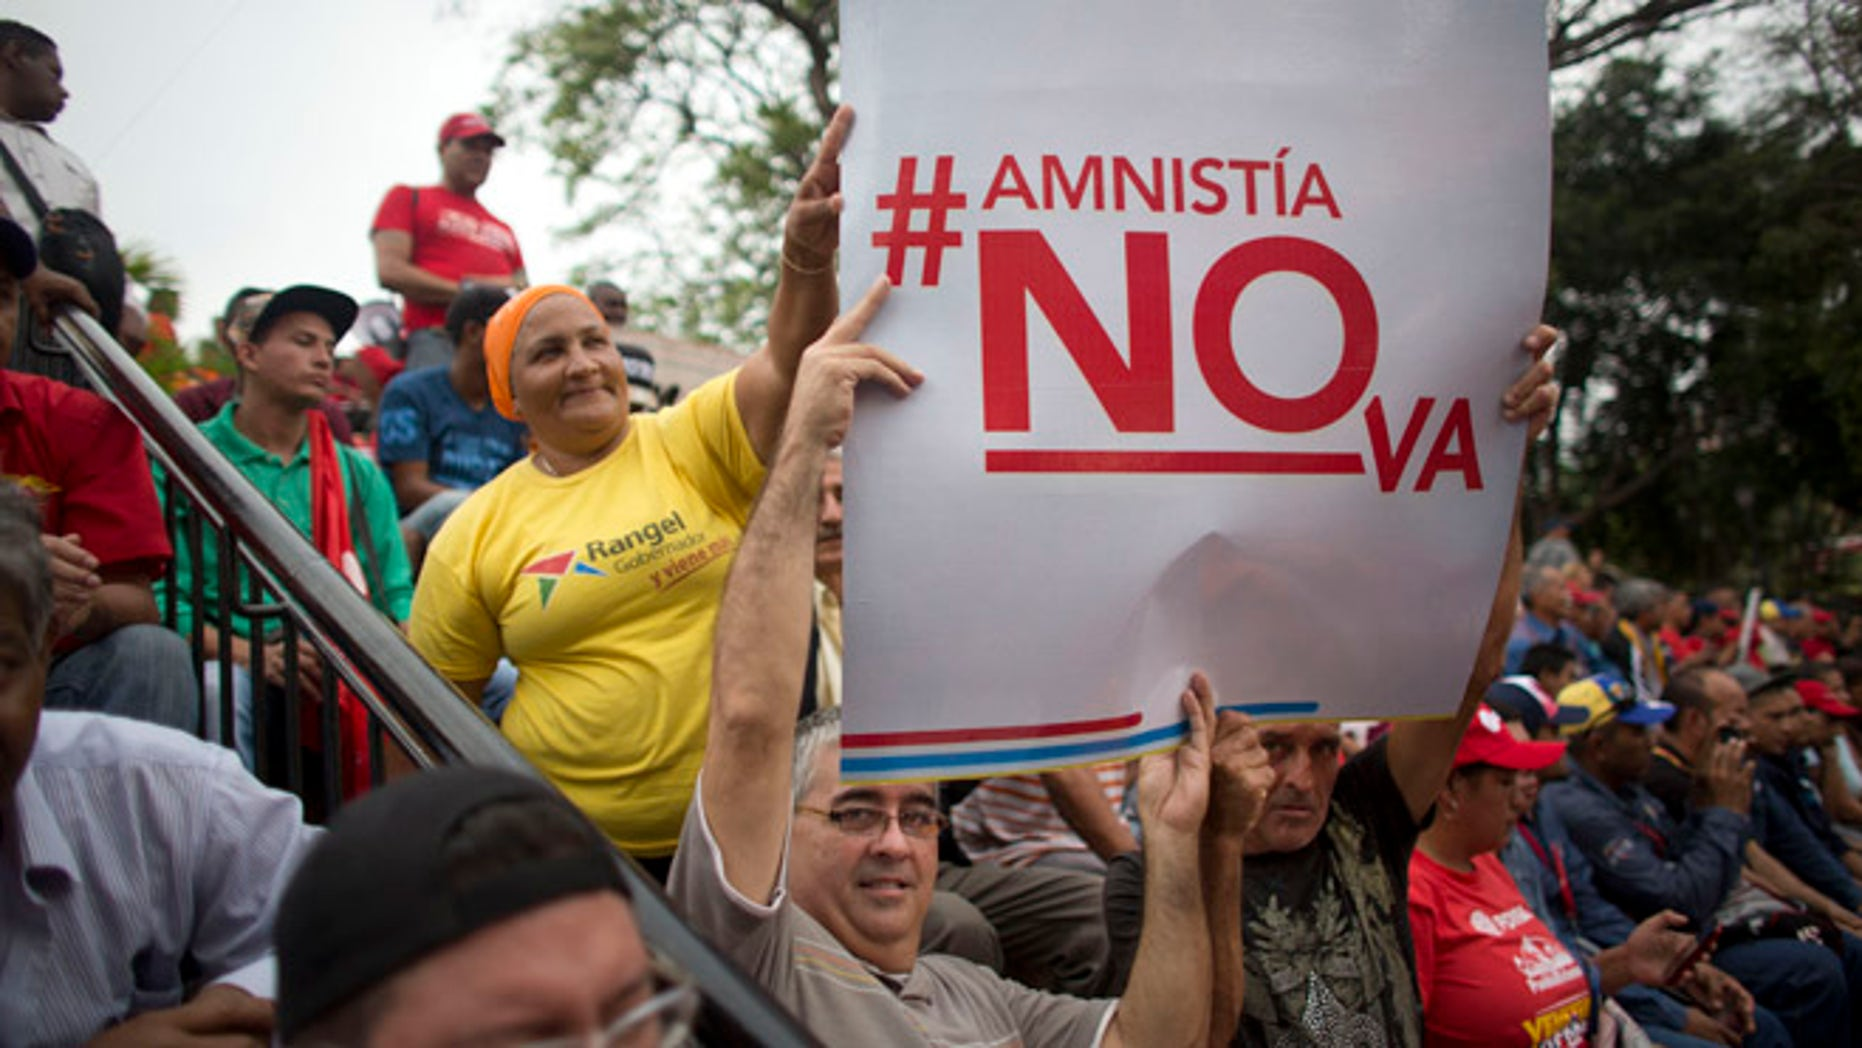 "Supporters of President Nicolas Maduro hold a sign that reads in Spanish ""Amnesty will not go"" during a march, at Miraflores Presidential Palace in Caracas, Venezuela, Thursday, April 7, 2016. Groups allied to Venezuela's socialist administration marched to protest an amnesty law passed by the opposition controlled congress calling for release of those it deems to be political detainees. (AP Photo/Ariana Cubillos)"